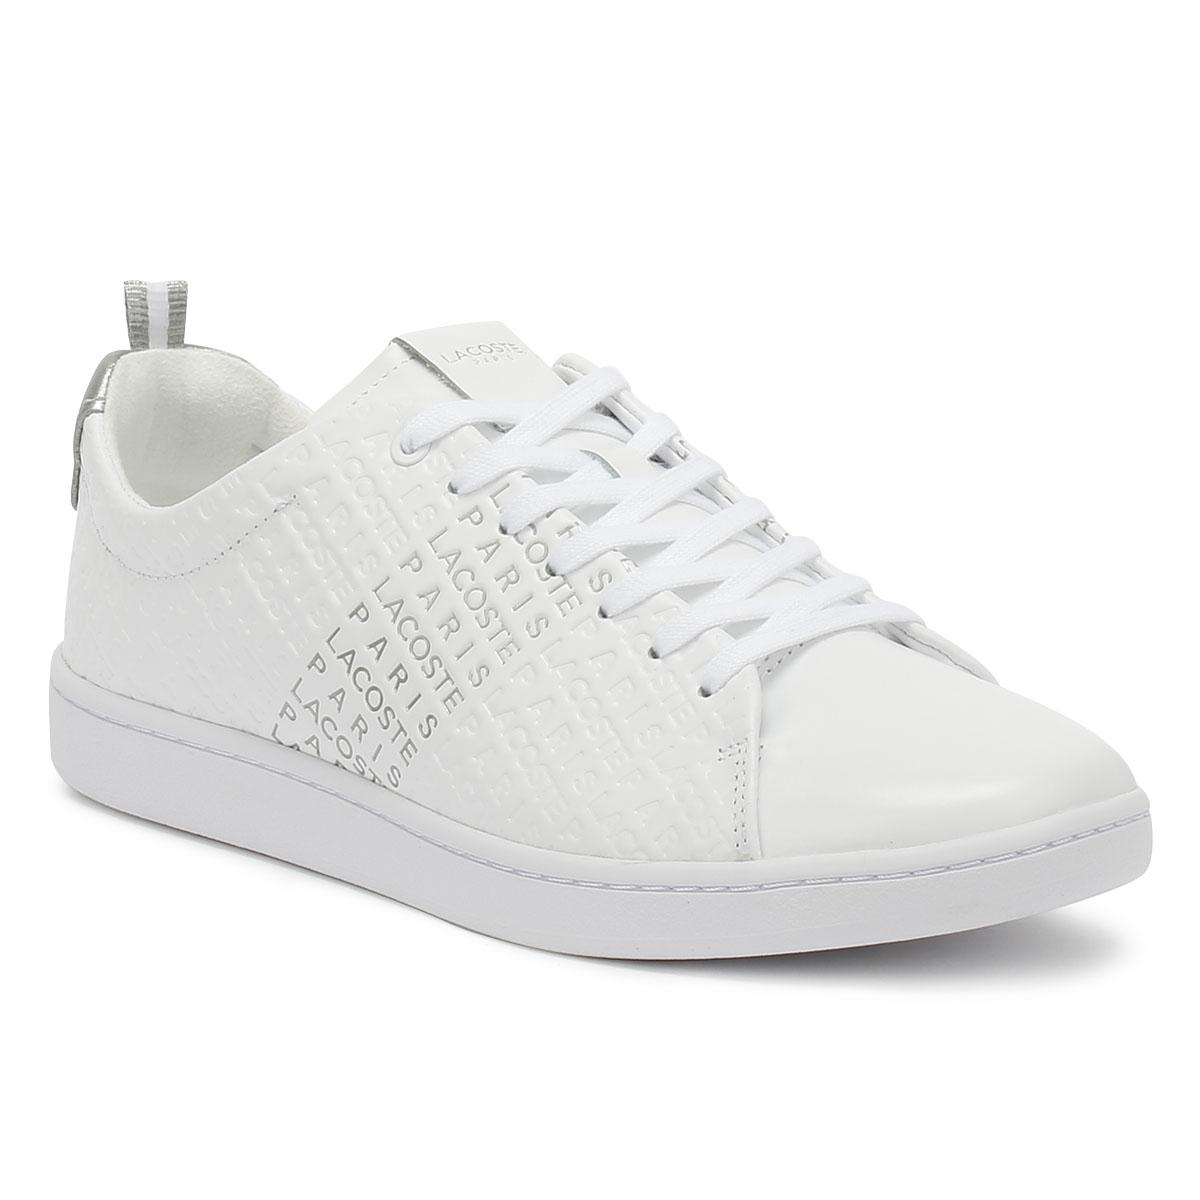 c1c8a1fbd7437 Lyst - Lacoste Carnaby Evo 119 3 Womens Off White Trainers in White